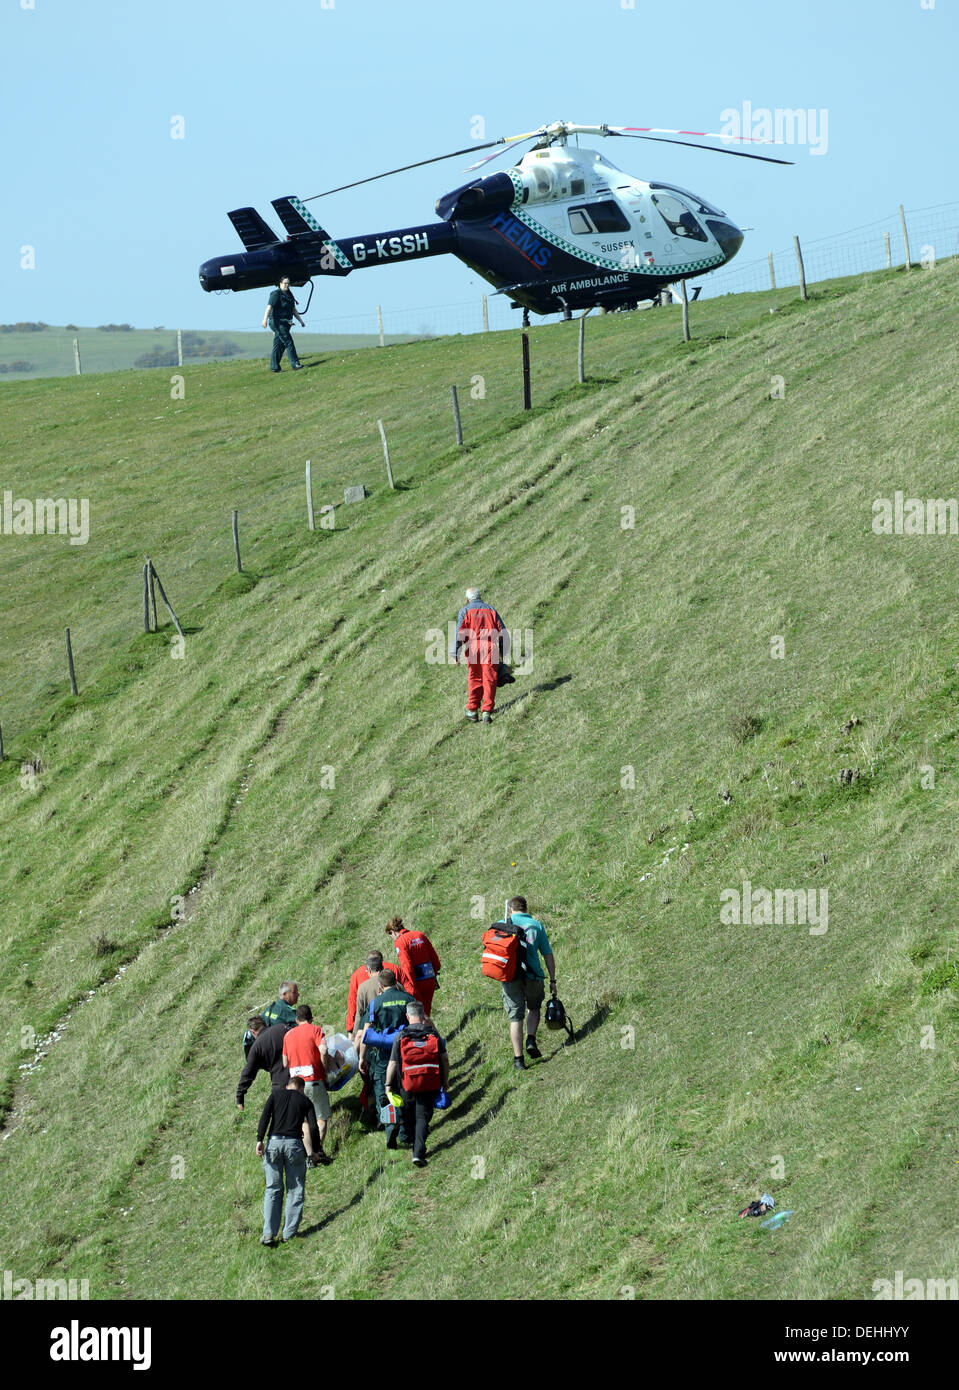 Kent Air Ambulance attending the scene of a paraglider crash, Mount Caburn, Lewes East Sussex - Stock Image